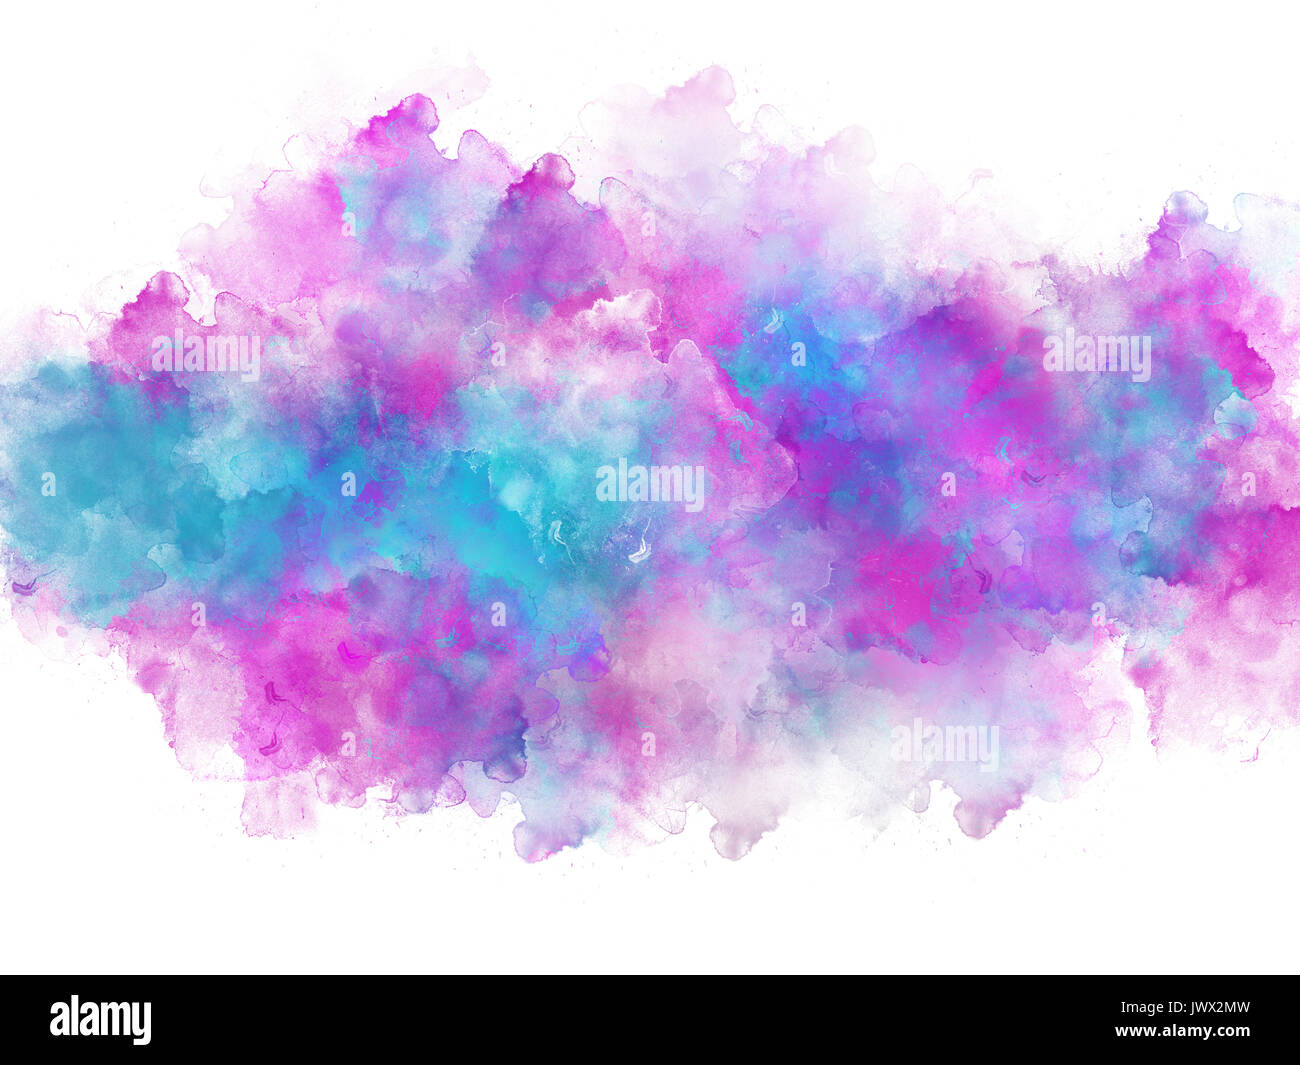 artistic blue and pink watercolor splash effect template on white